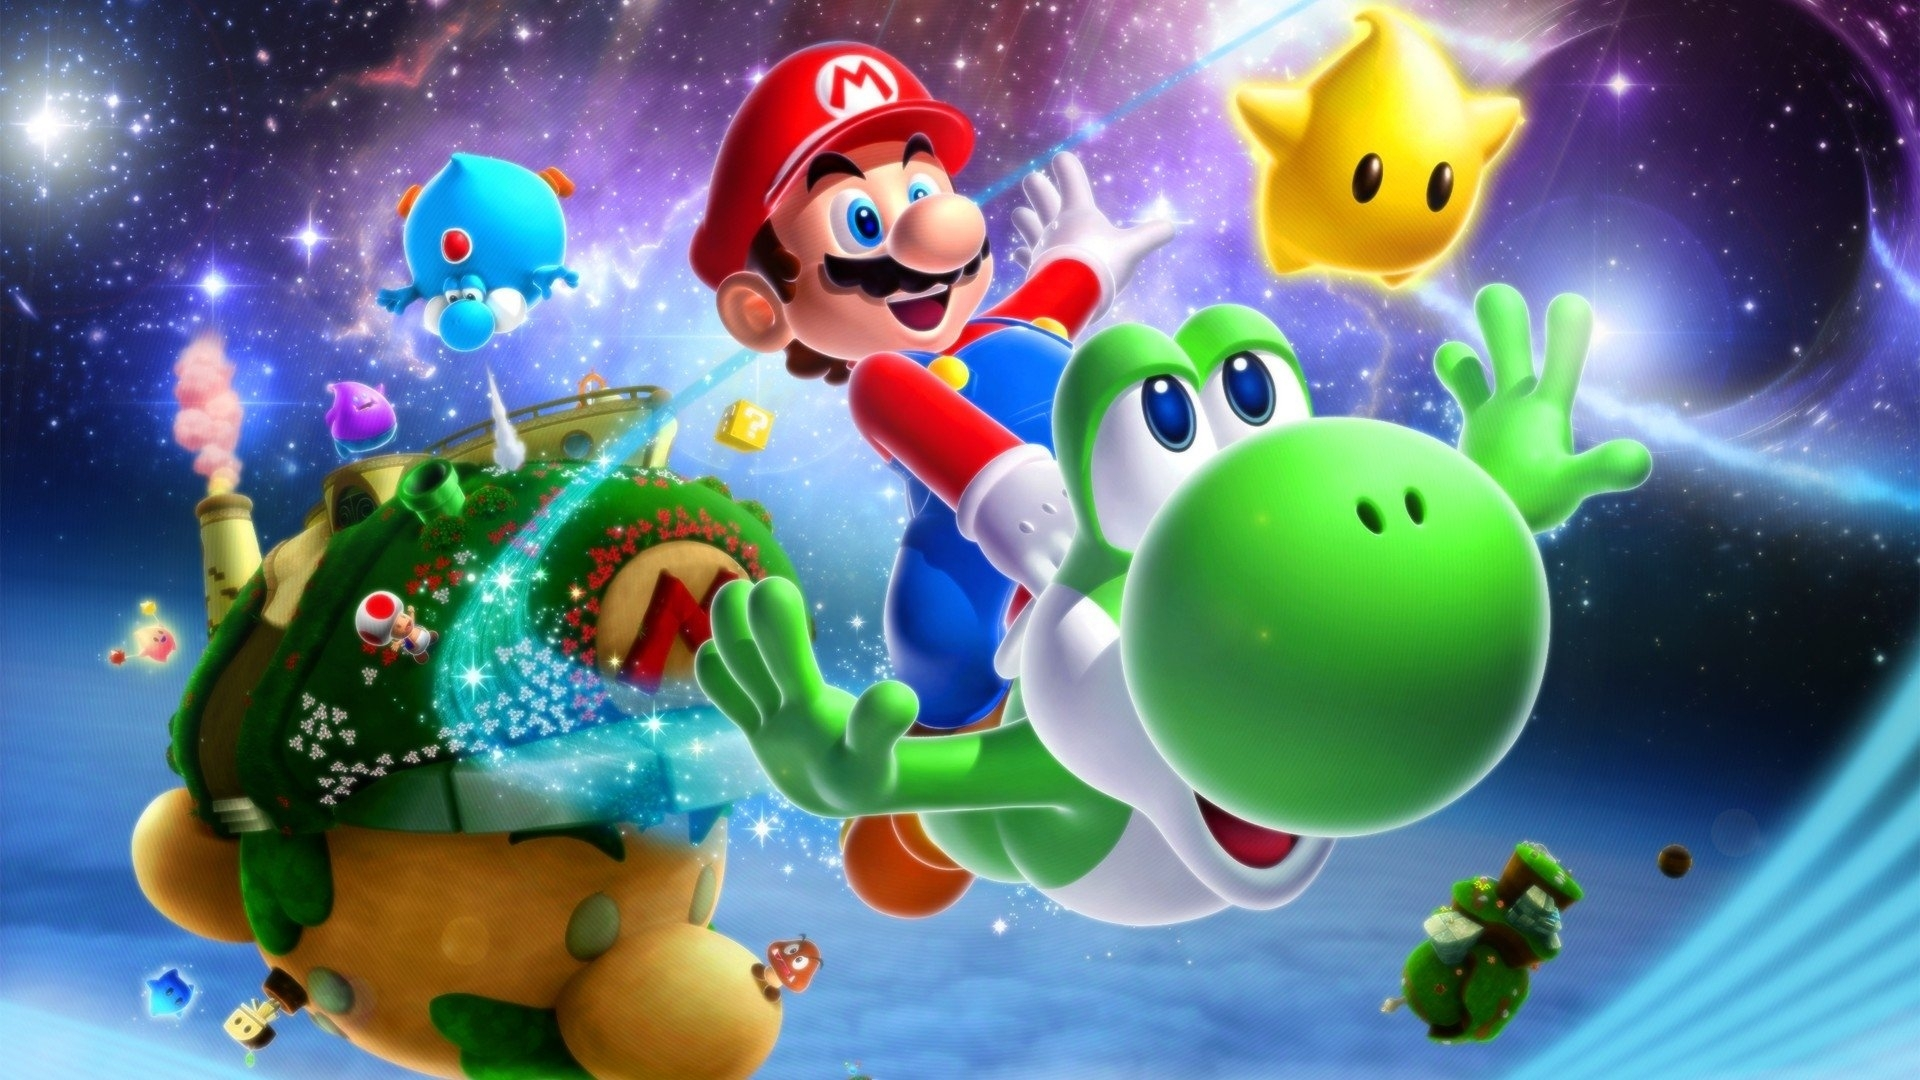 10 Best Super Mario Galaxy 2 Wallpaper FULL HD 1920×1080 For PC Background